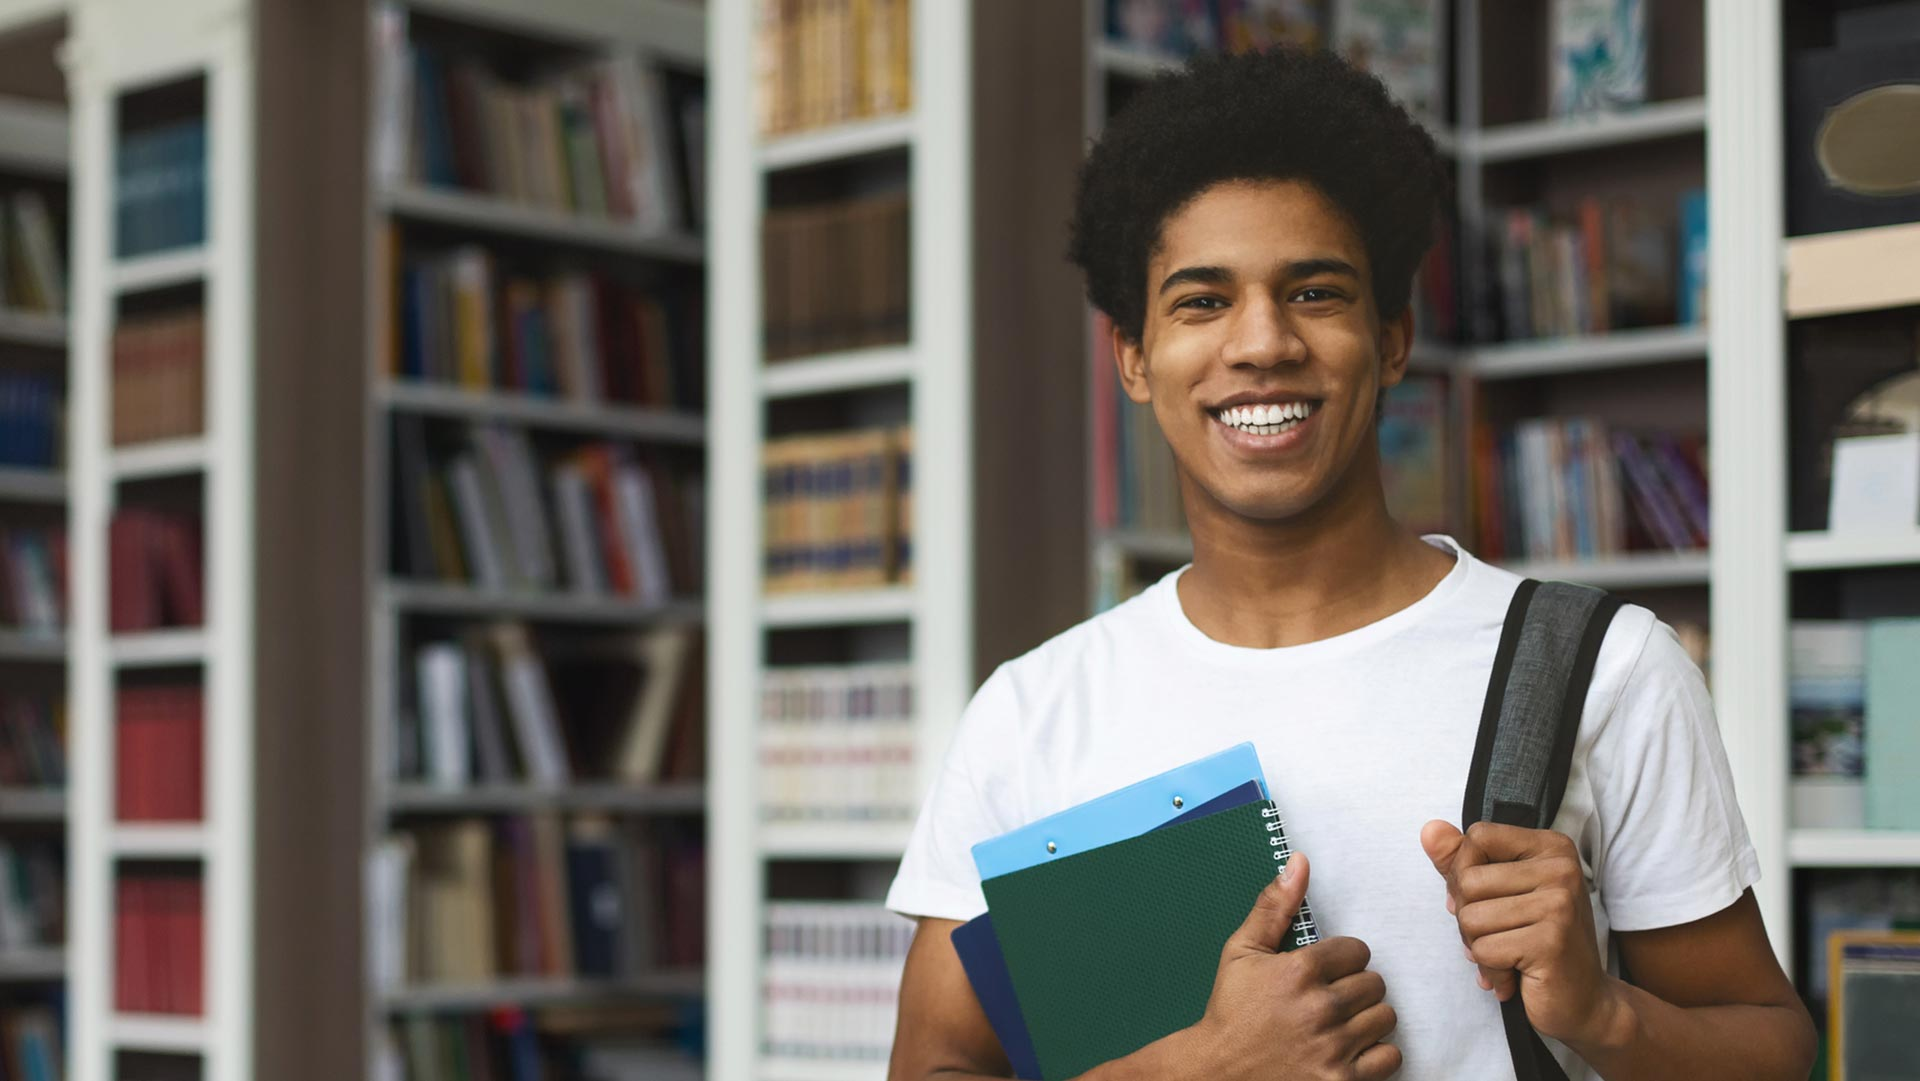 A young black man smiles in his high school library